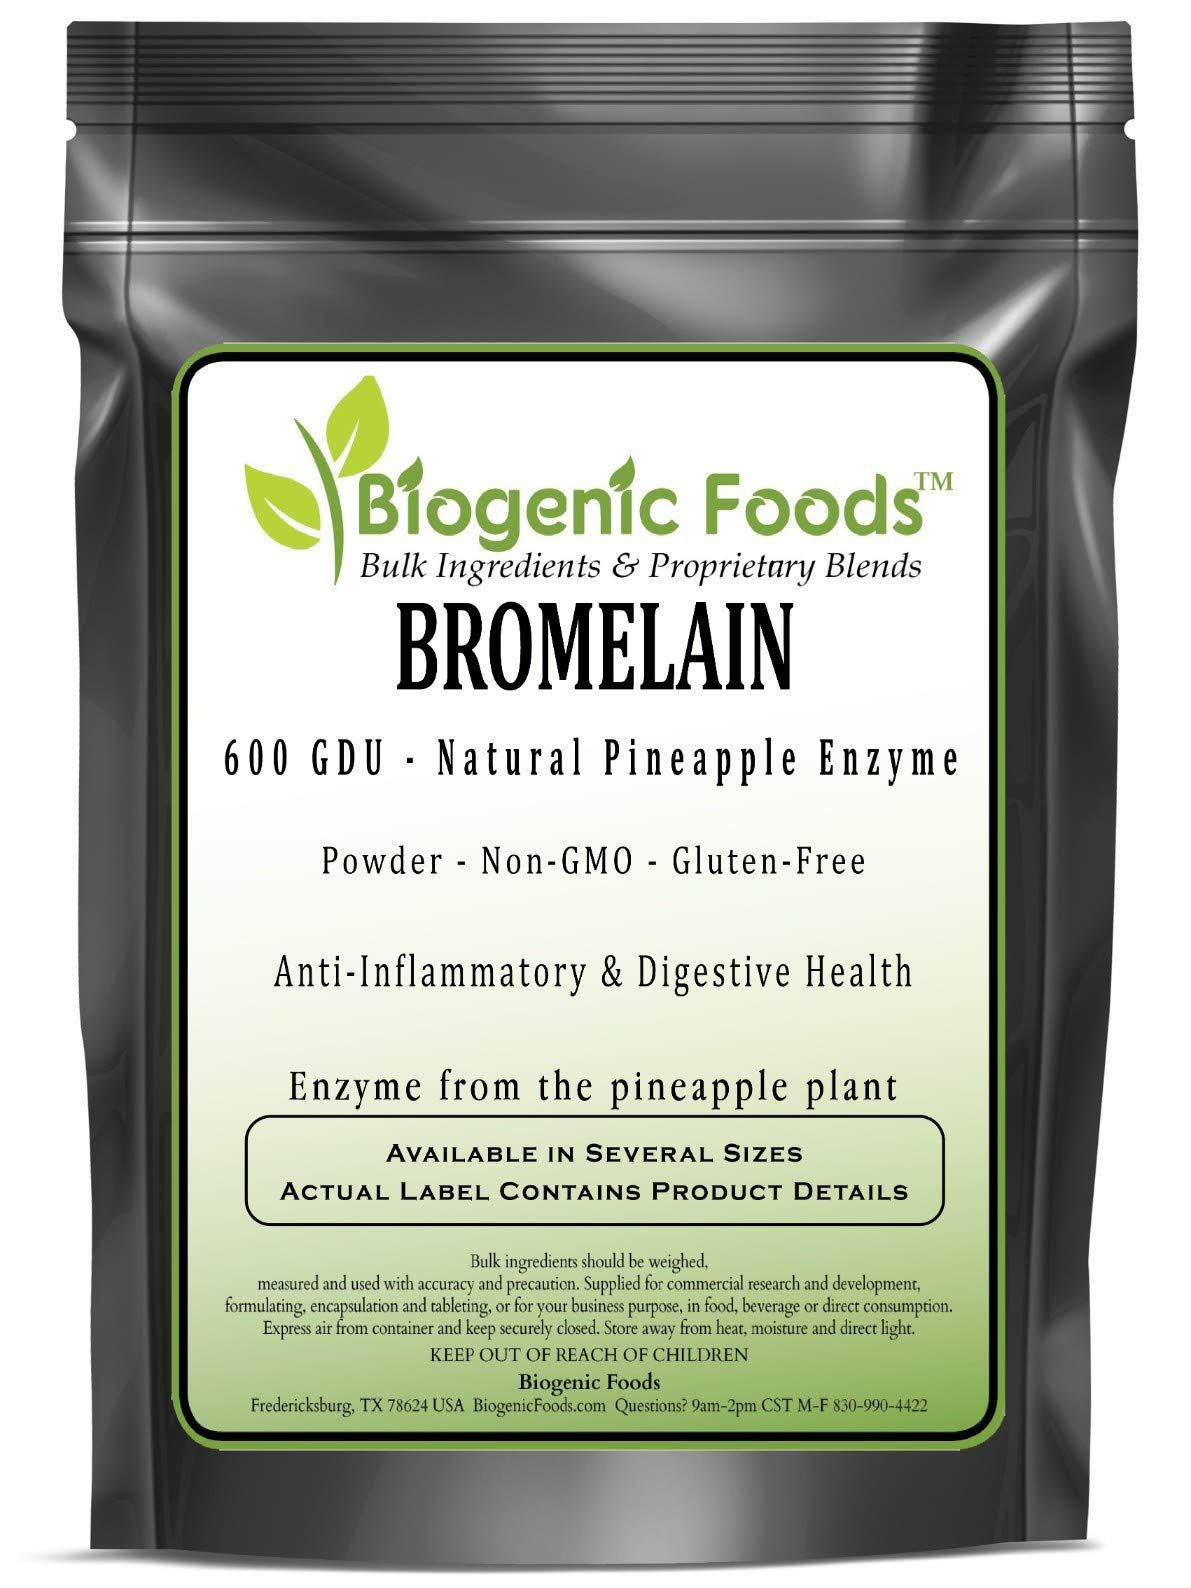 Bromelain - 600 GDU - Natural Pineapple Enzyme Powder Extract - Enzyme from The Pineapple Plant, 5 kg